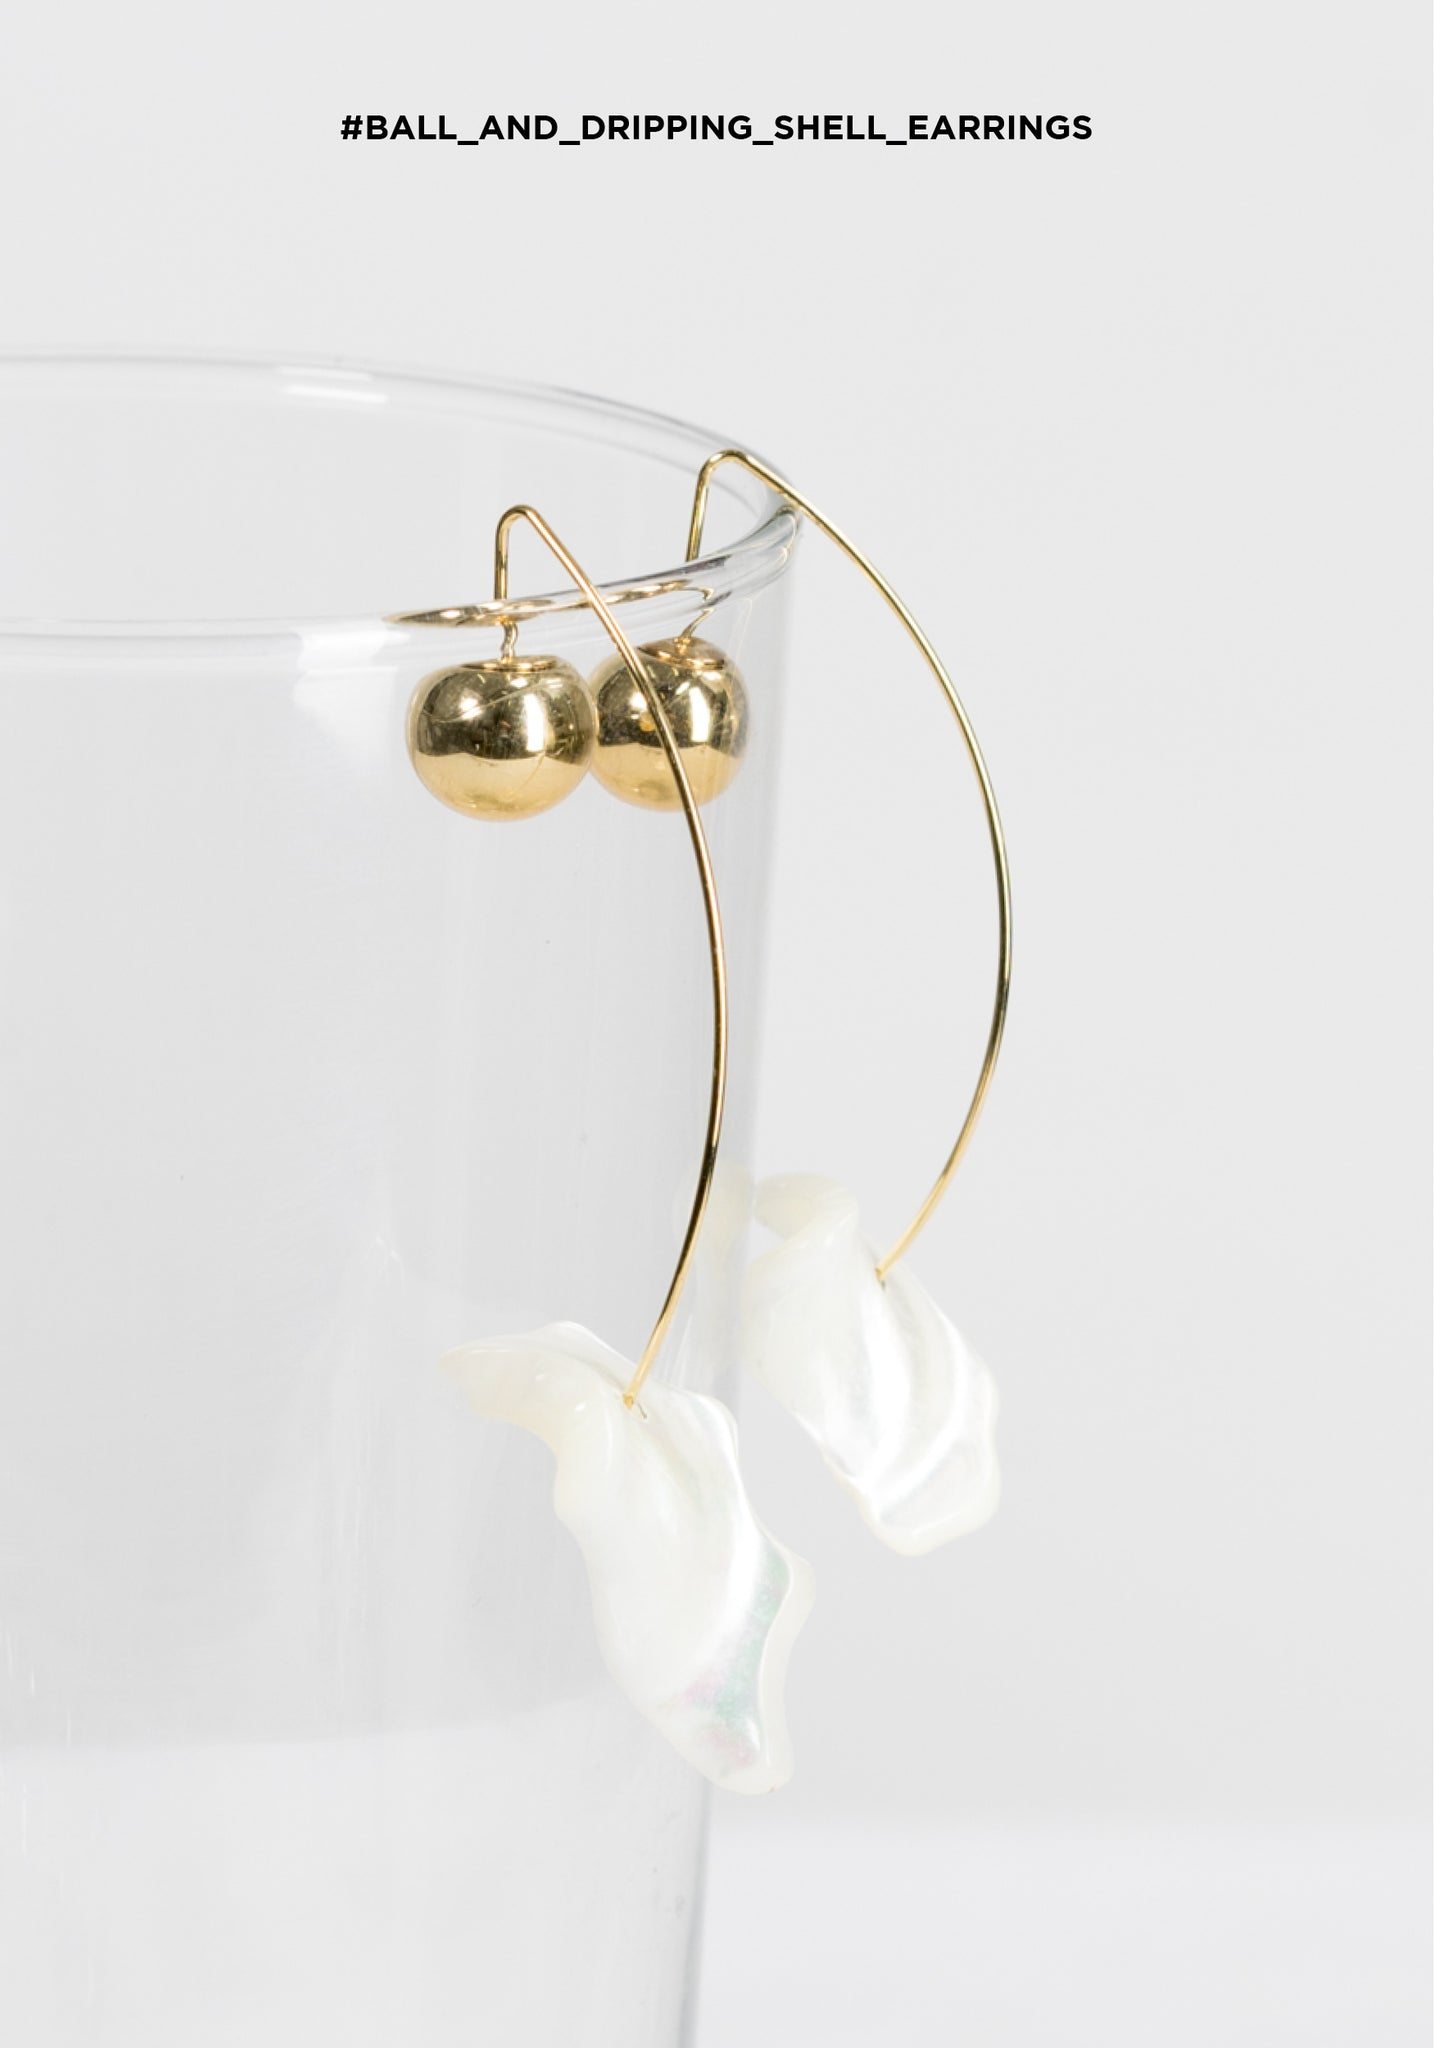 Ball and Dripping Shell Earrings - whoami